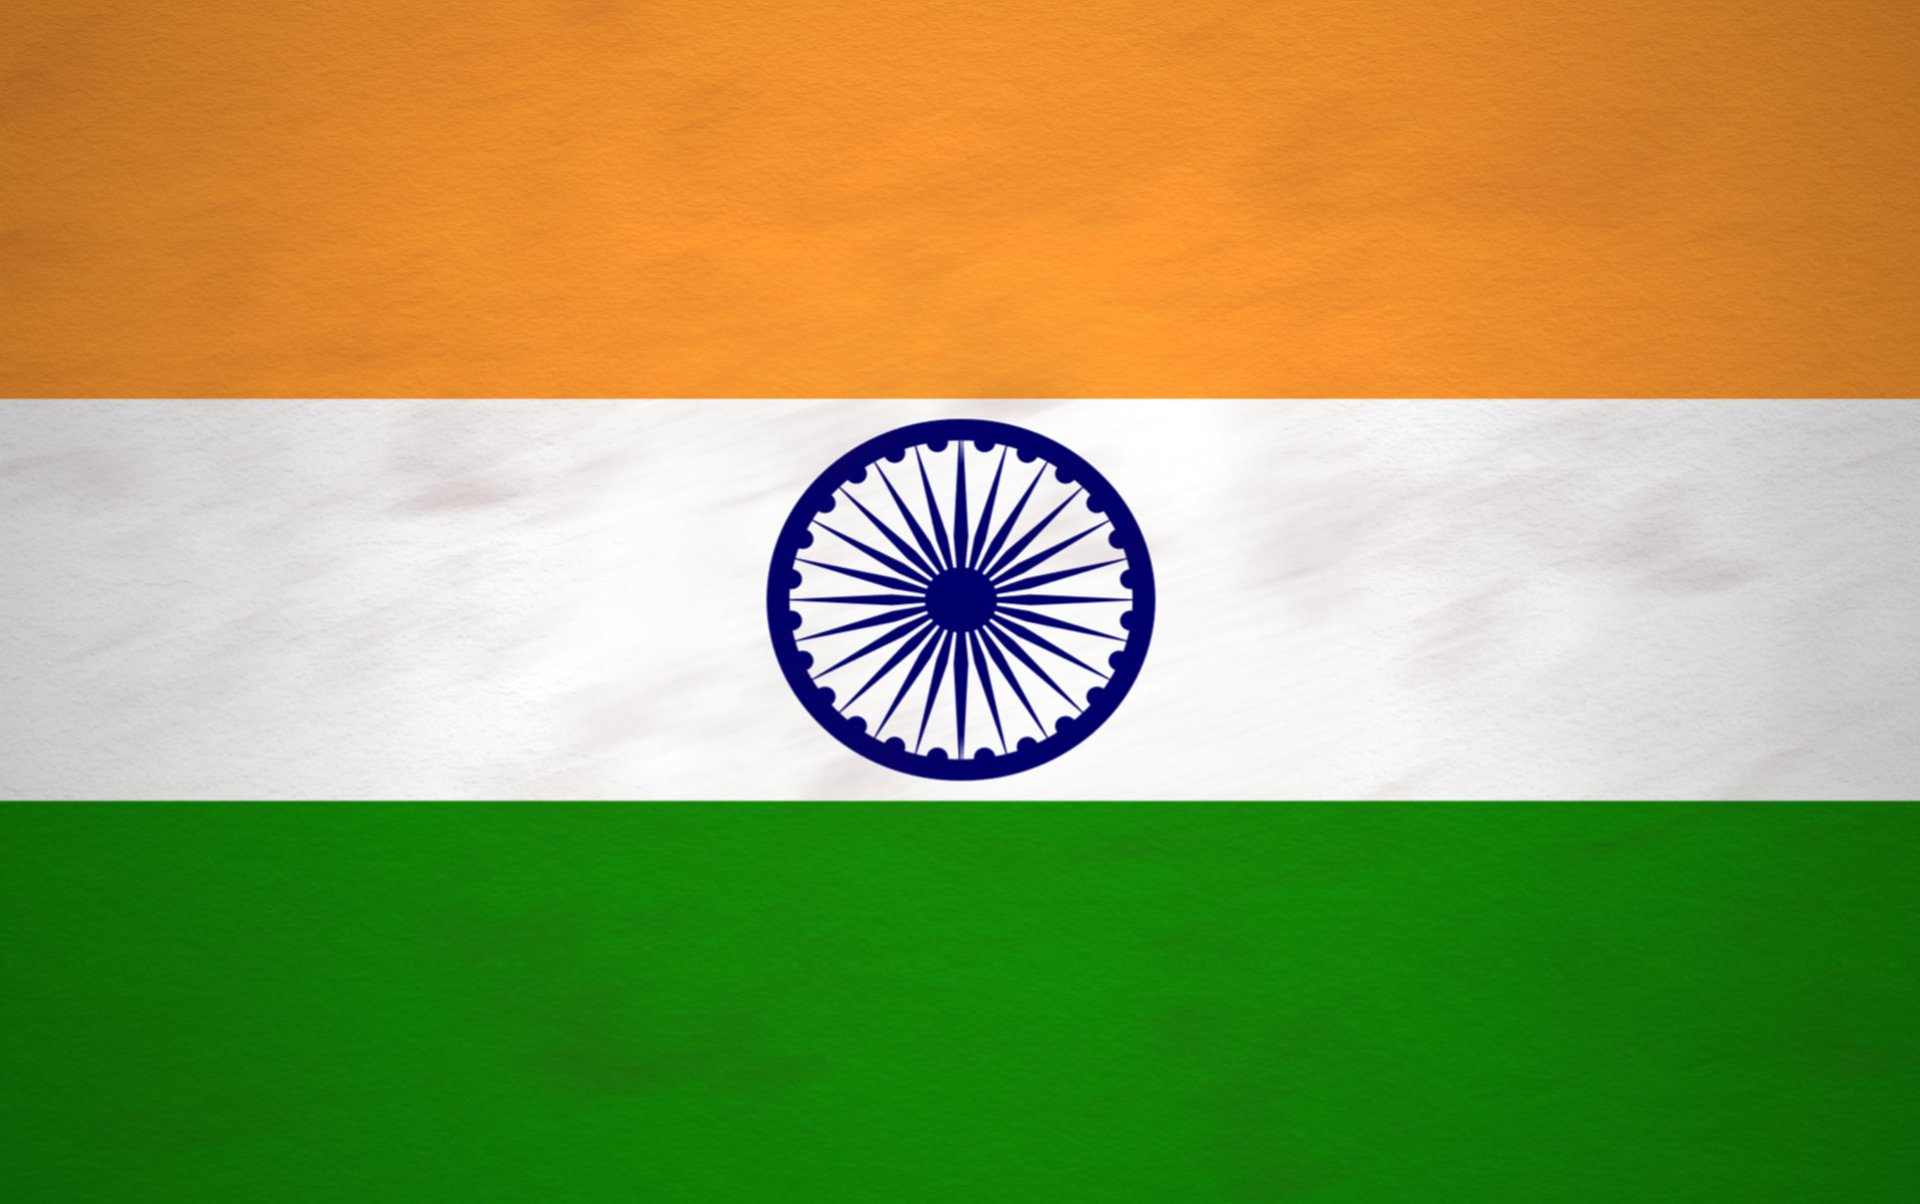 Indian Flag HD Images for Whatsapp DP - Happy Independence Day 2016 1